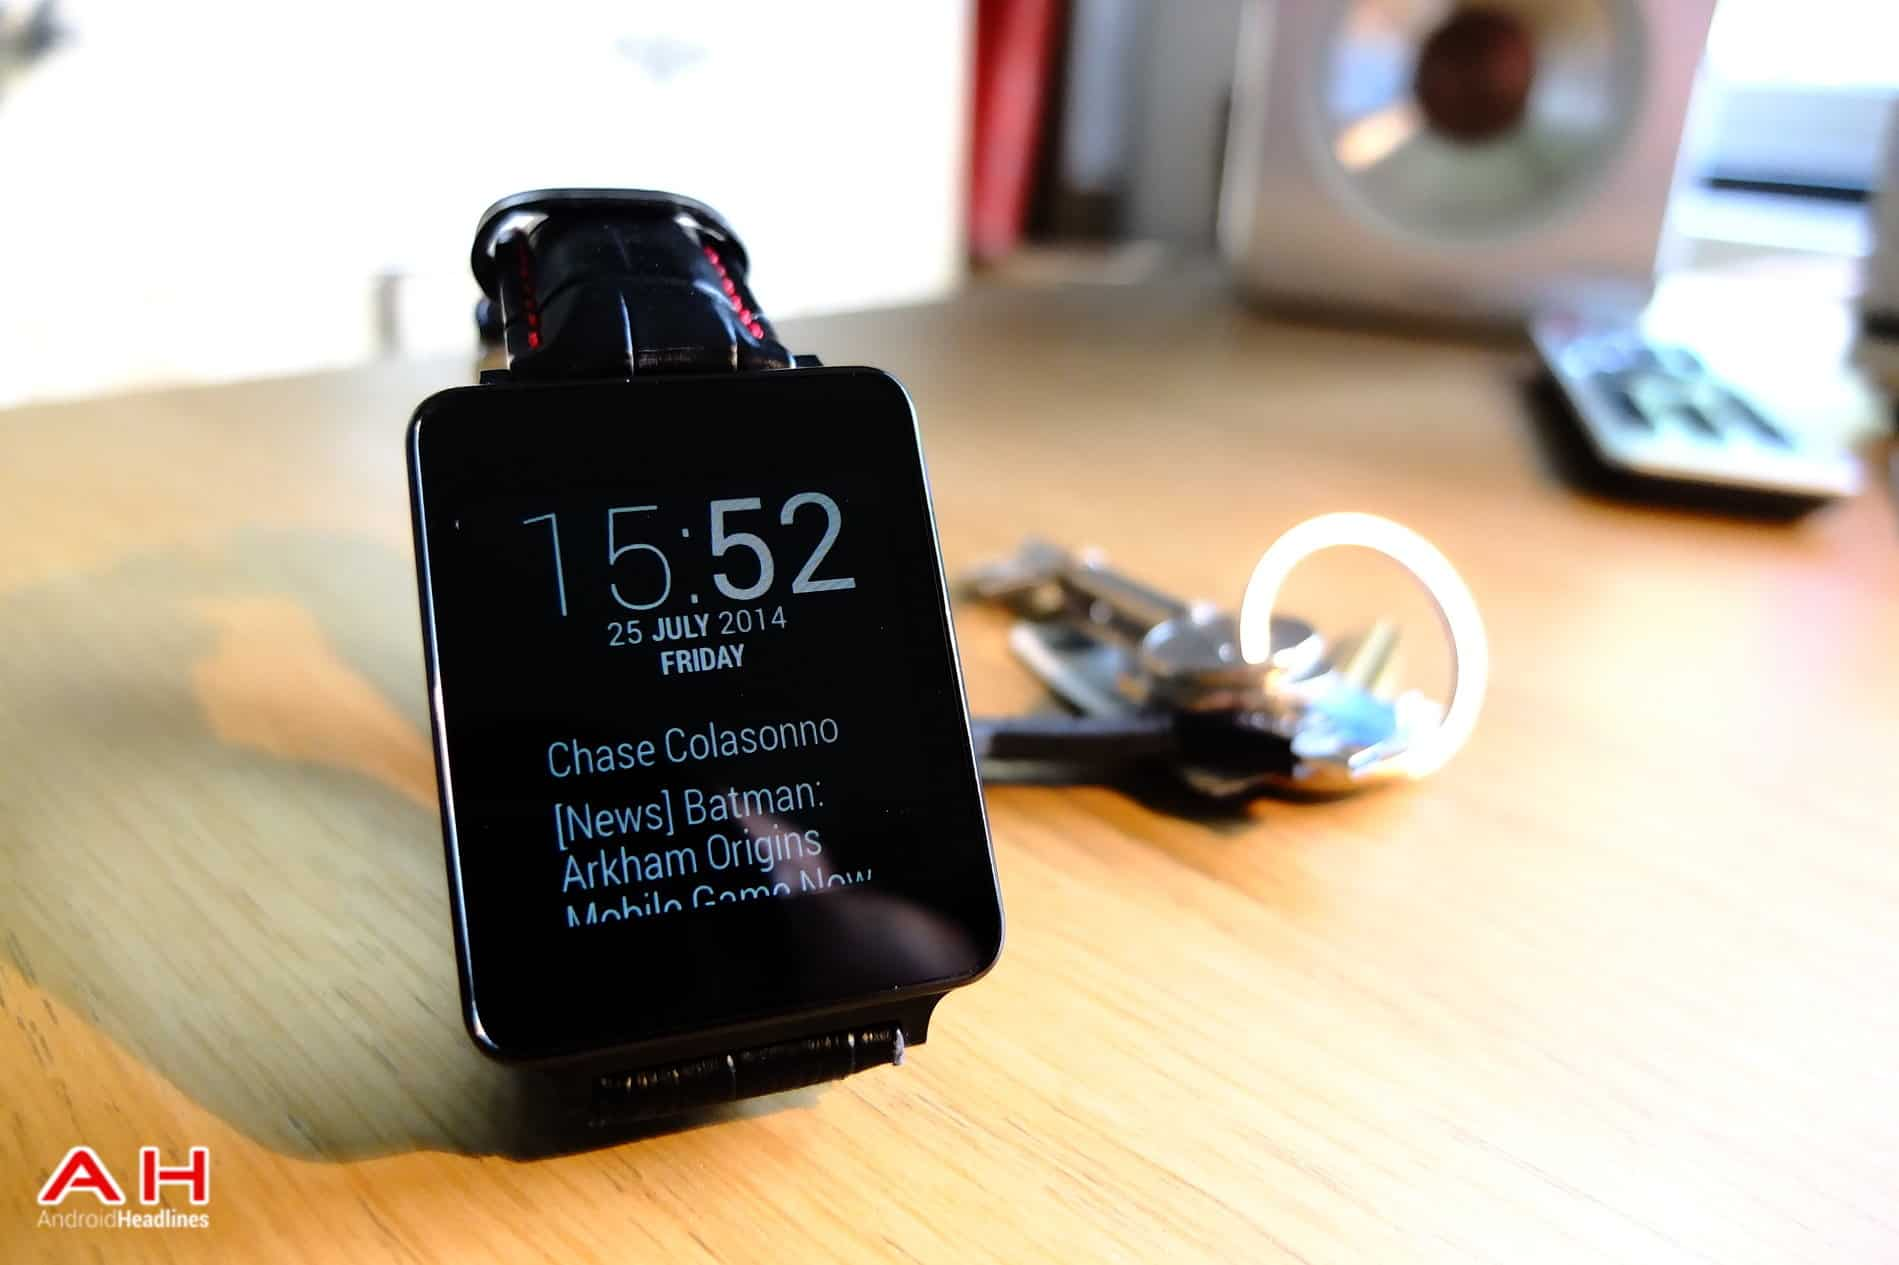 Android Headliner: More Smartwatches and Wearables are Coming; This is a Good Thing